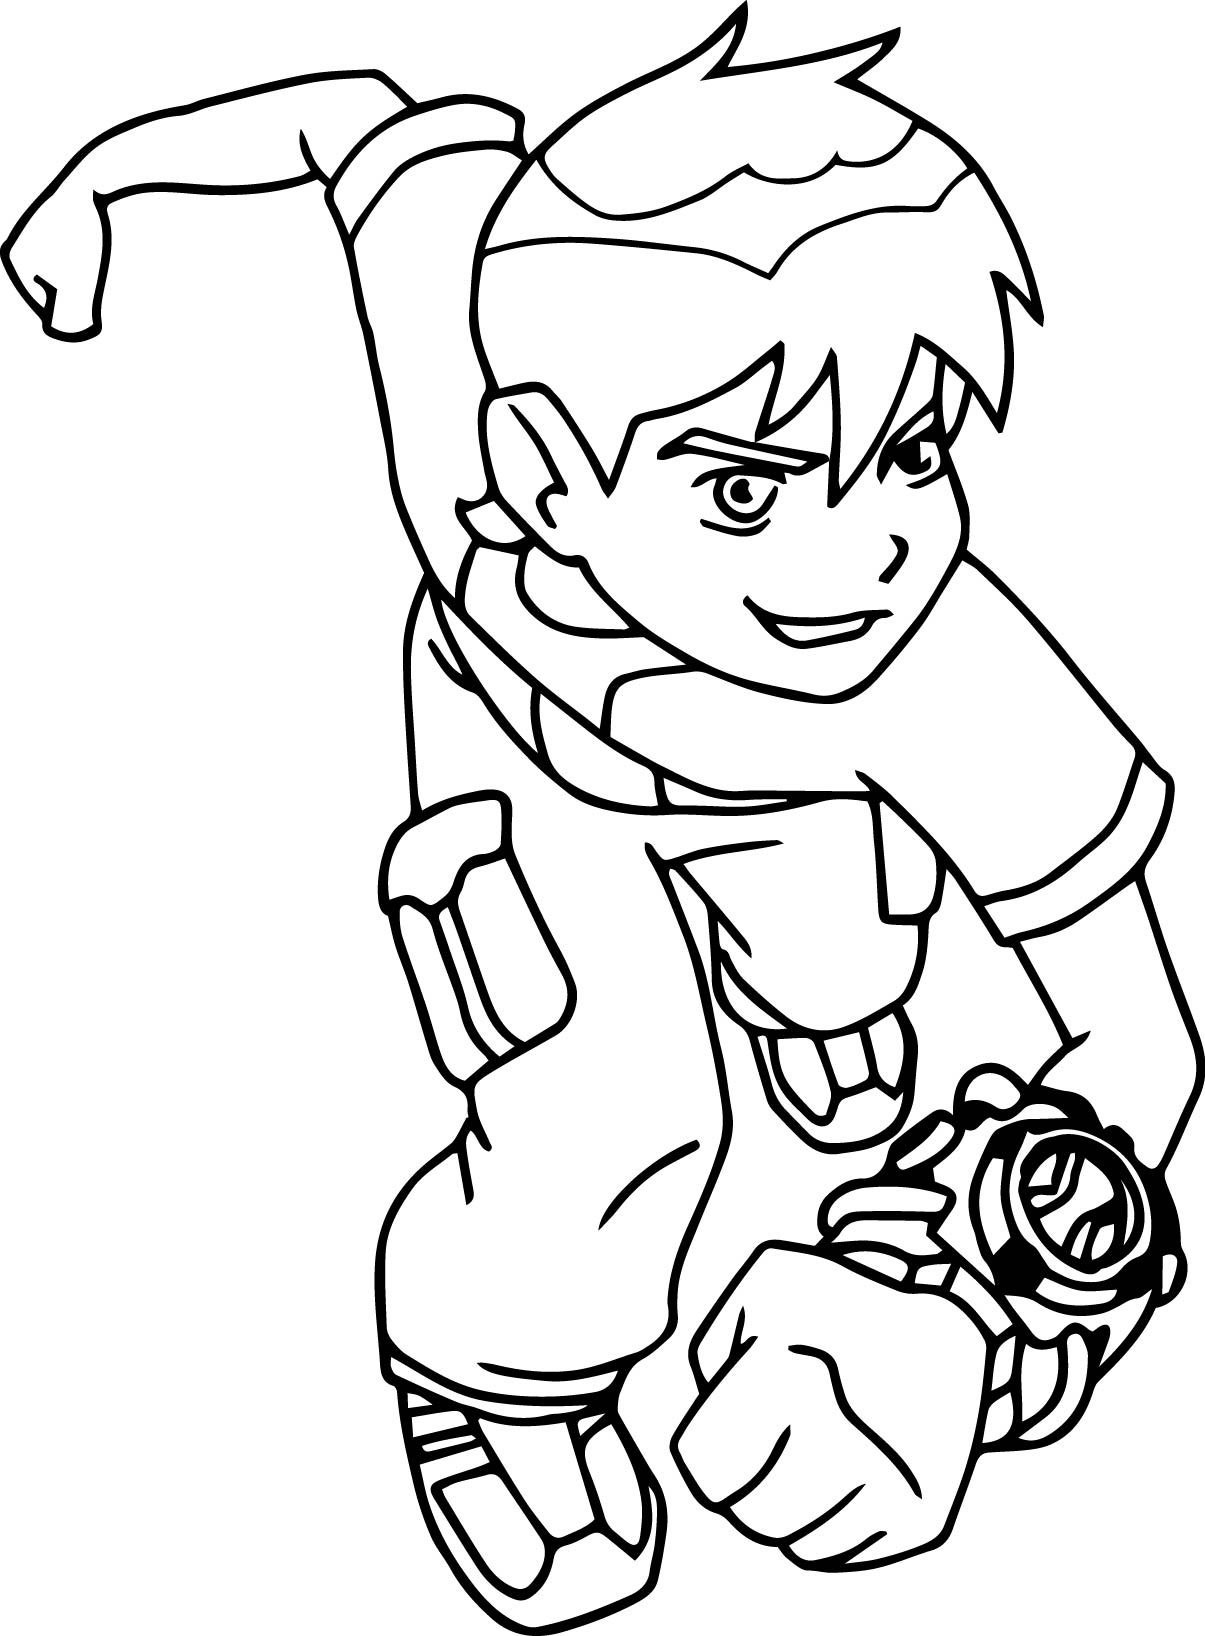 Cool Ben 10 Coloring Pages To Print Mcoloring